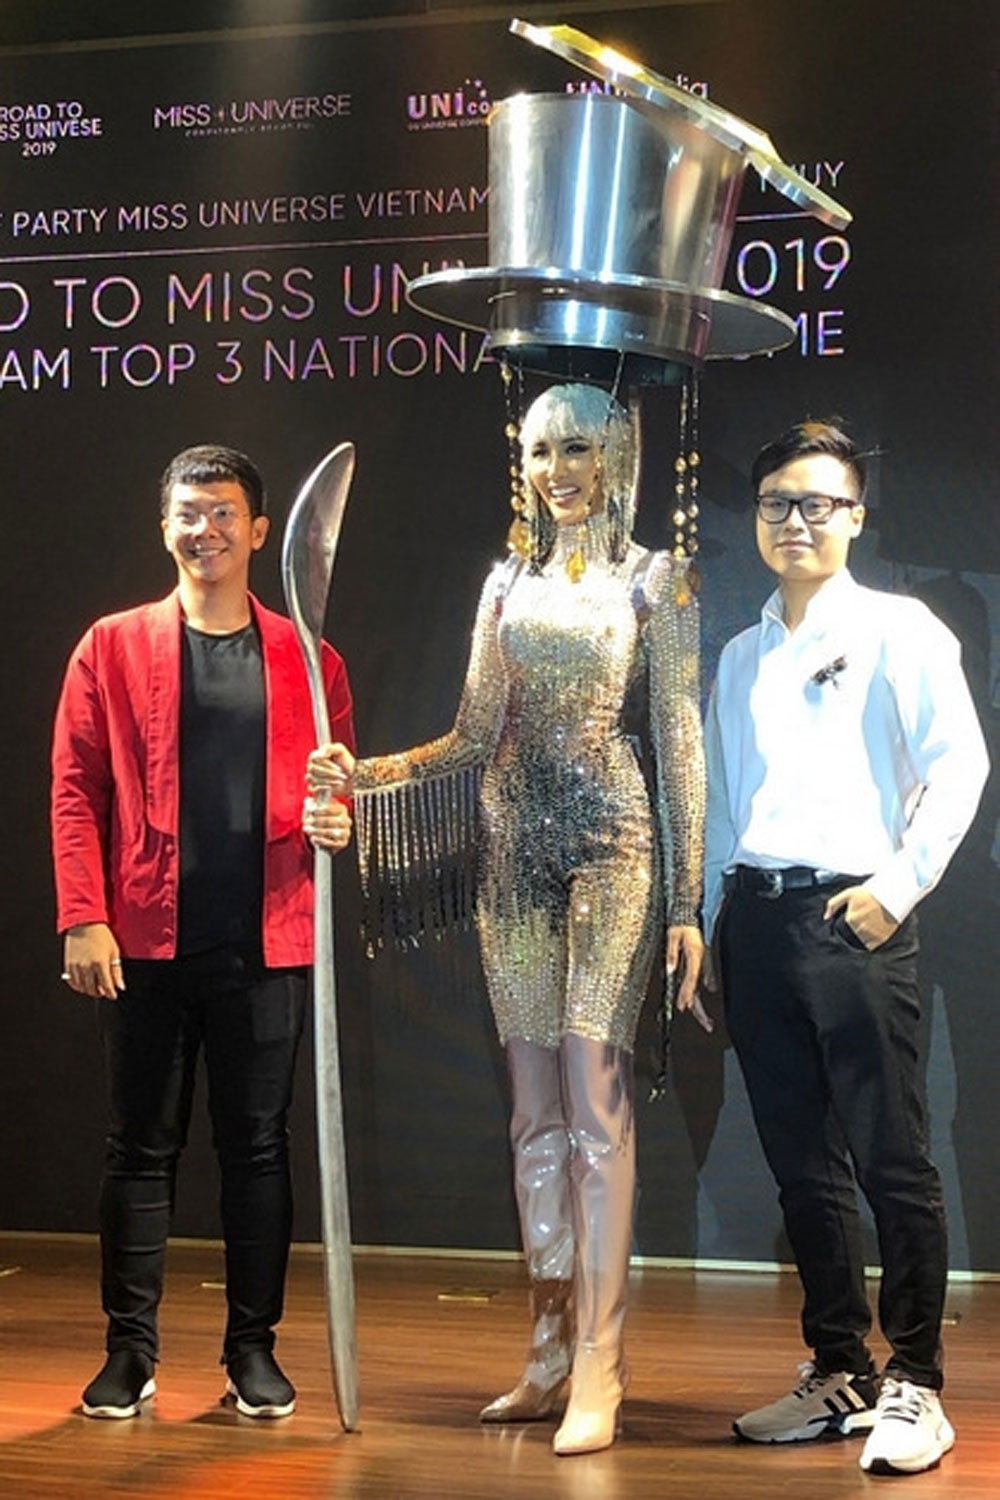 Vietnamese beauty, don filter coffee-inspired costume, Miss Universe pageant